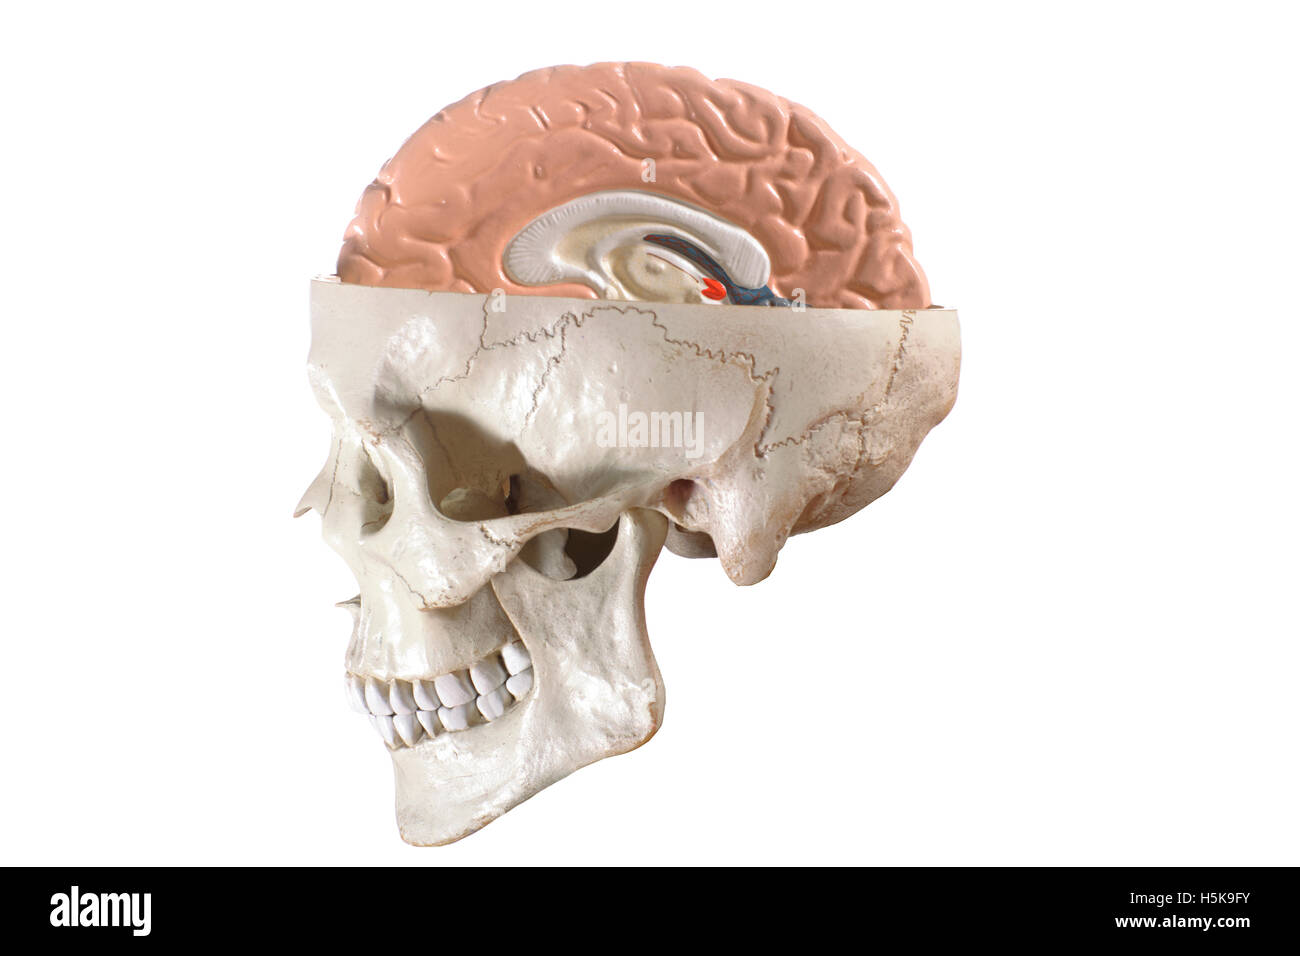 Anatomical model of the head and brain Stock Photo: 123970447 - Alamy